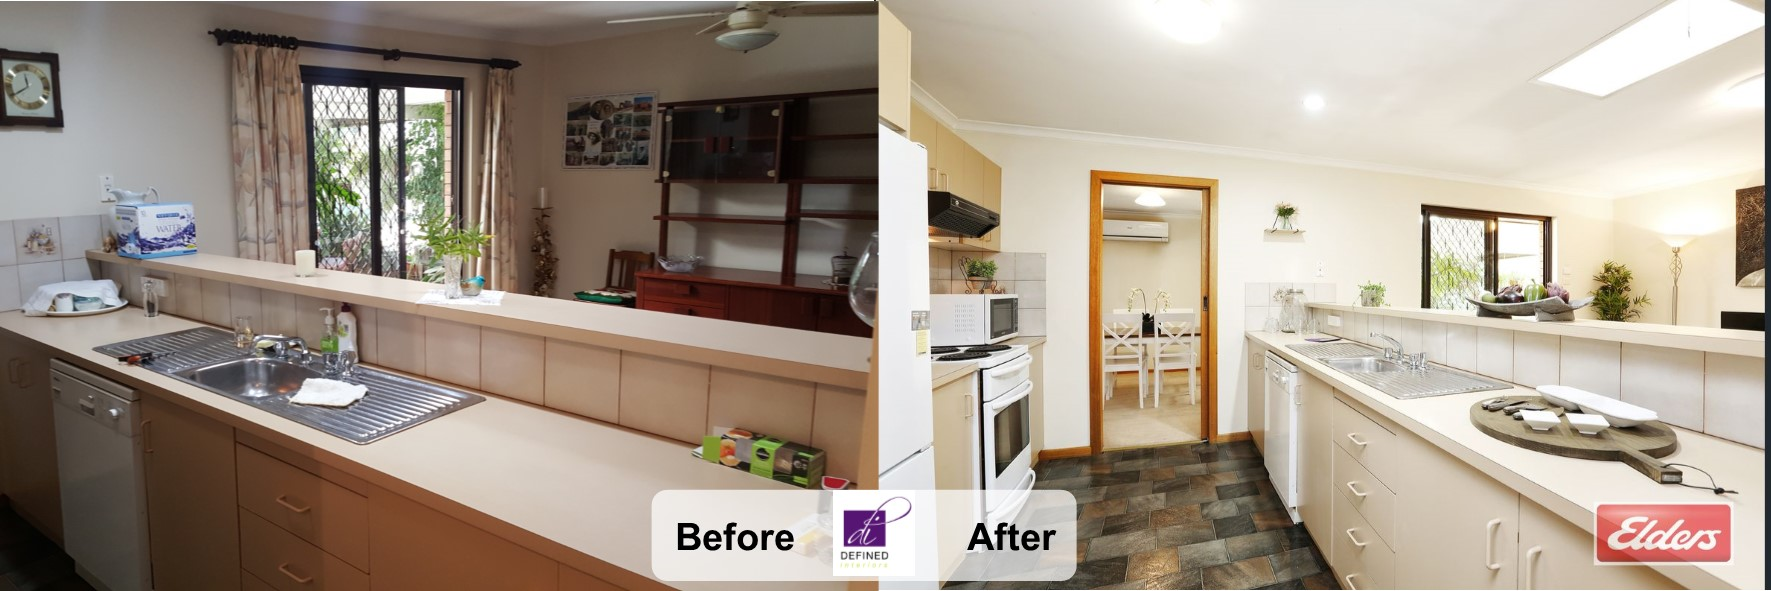 before-and-after6